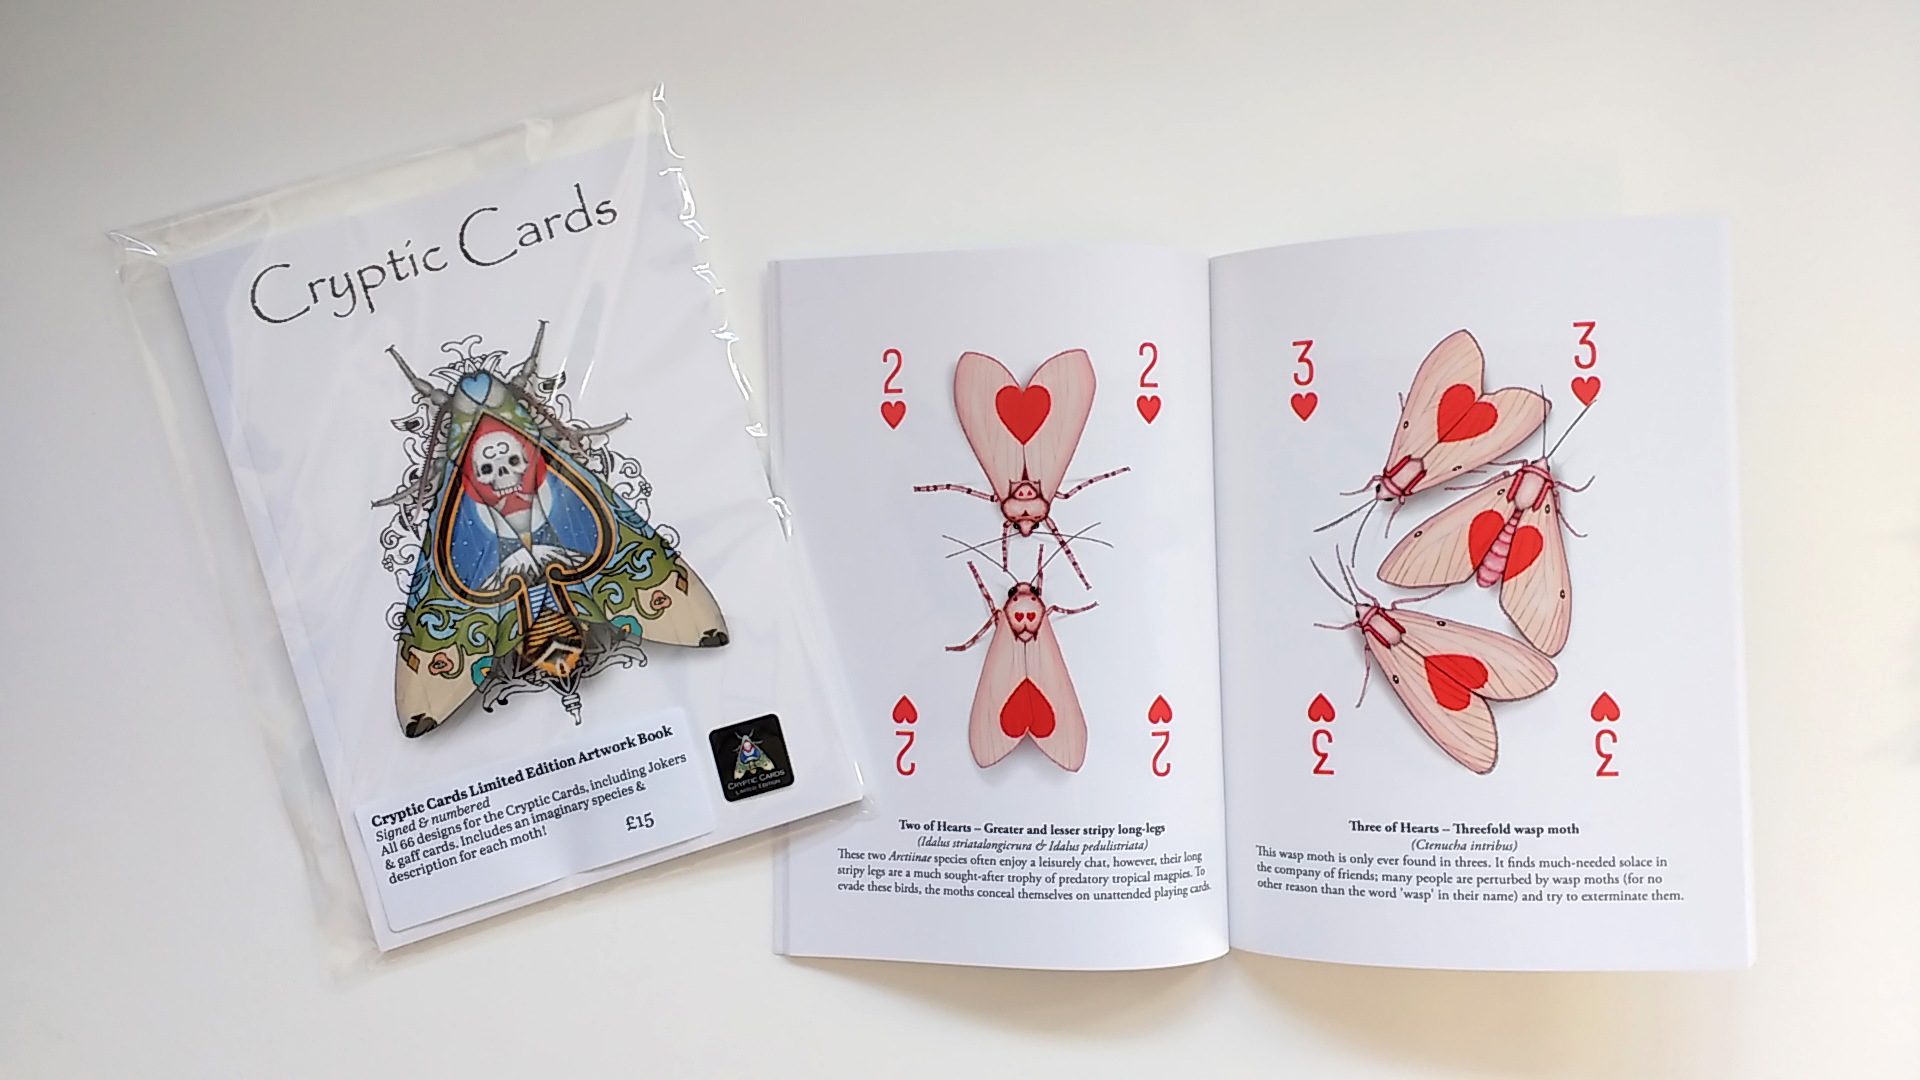 The art book for the playing card deck 'Cryptic Cards'